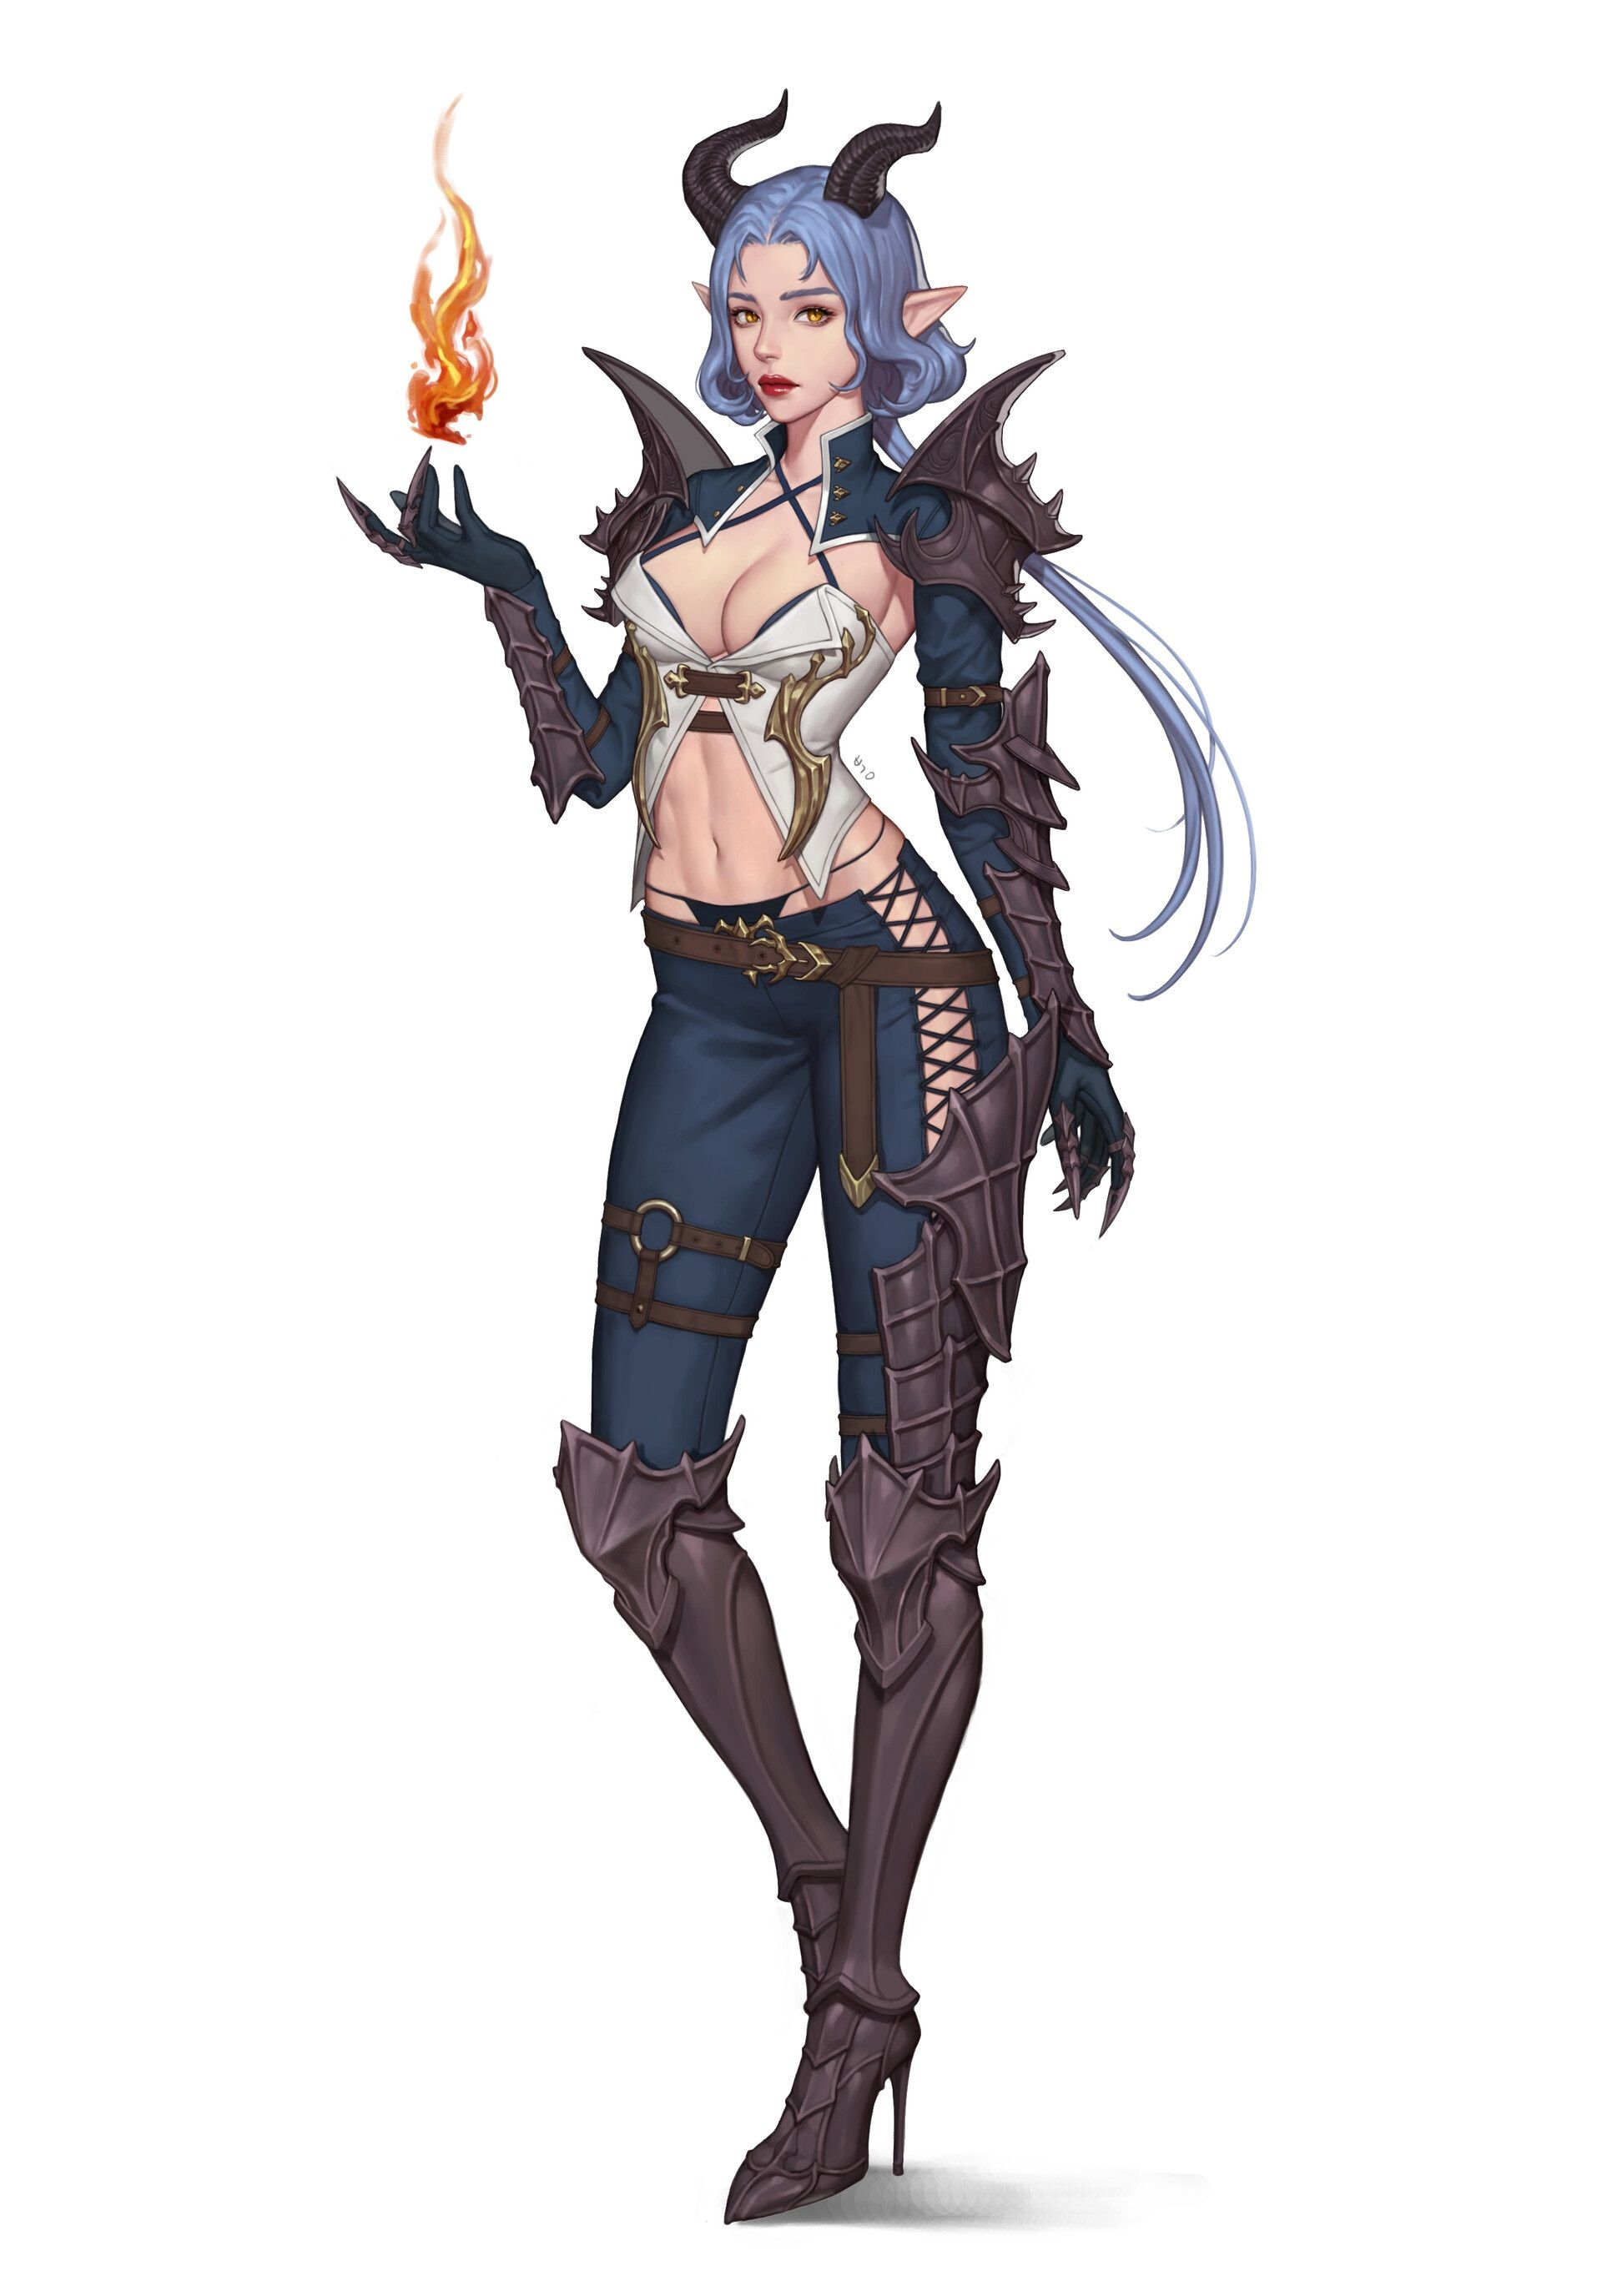 Pin By Cx Franz Juvenal On Monsters Female Character Design Female Character Concept Female Characters